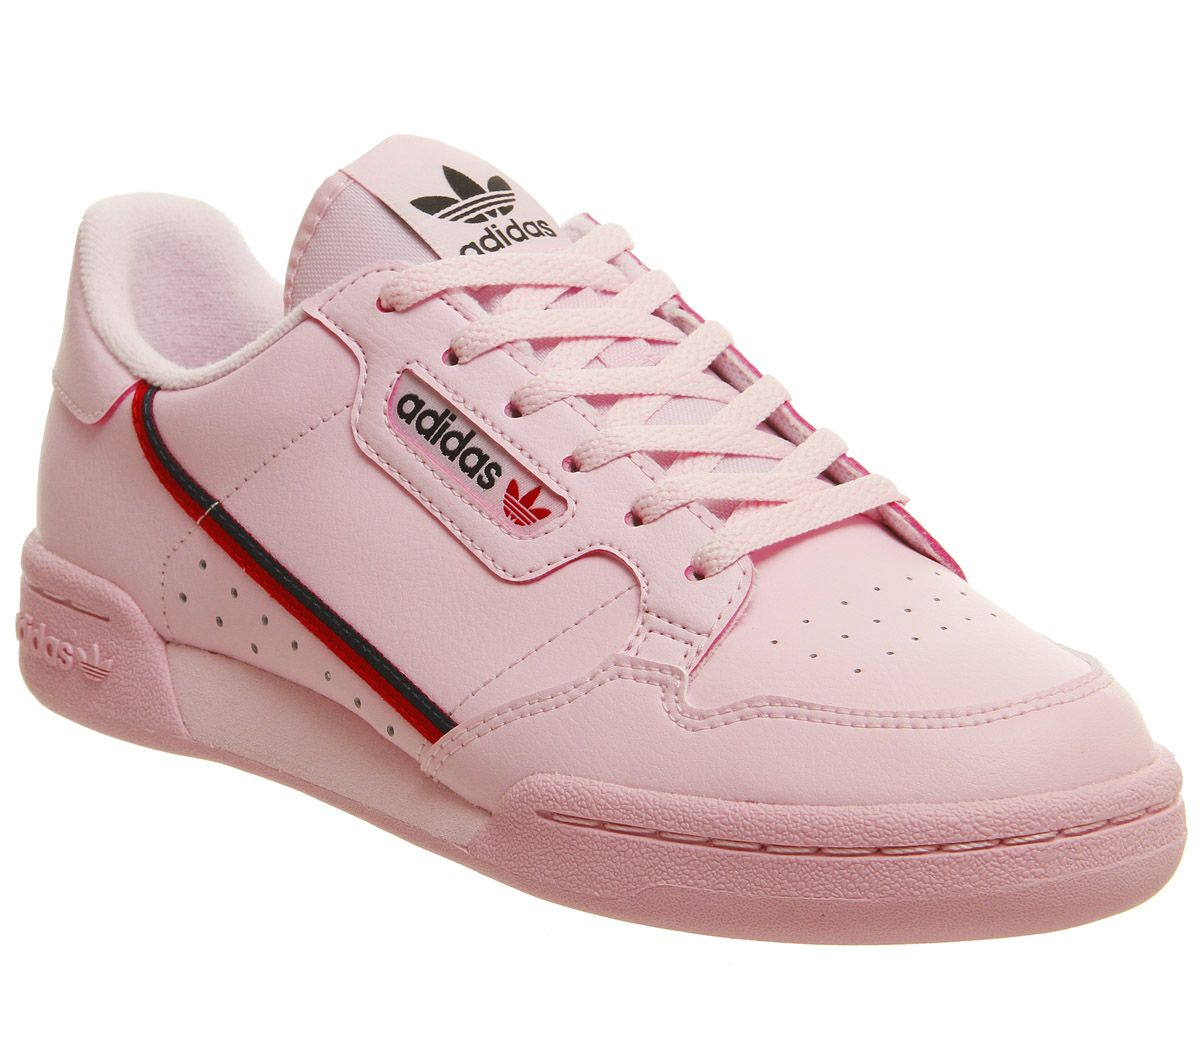 reputable site fb7bb a67c3 adidas Continental 80s Jnr Trainers Clear Pink Scarlet Colleagite ...